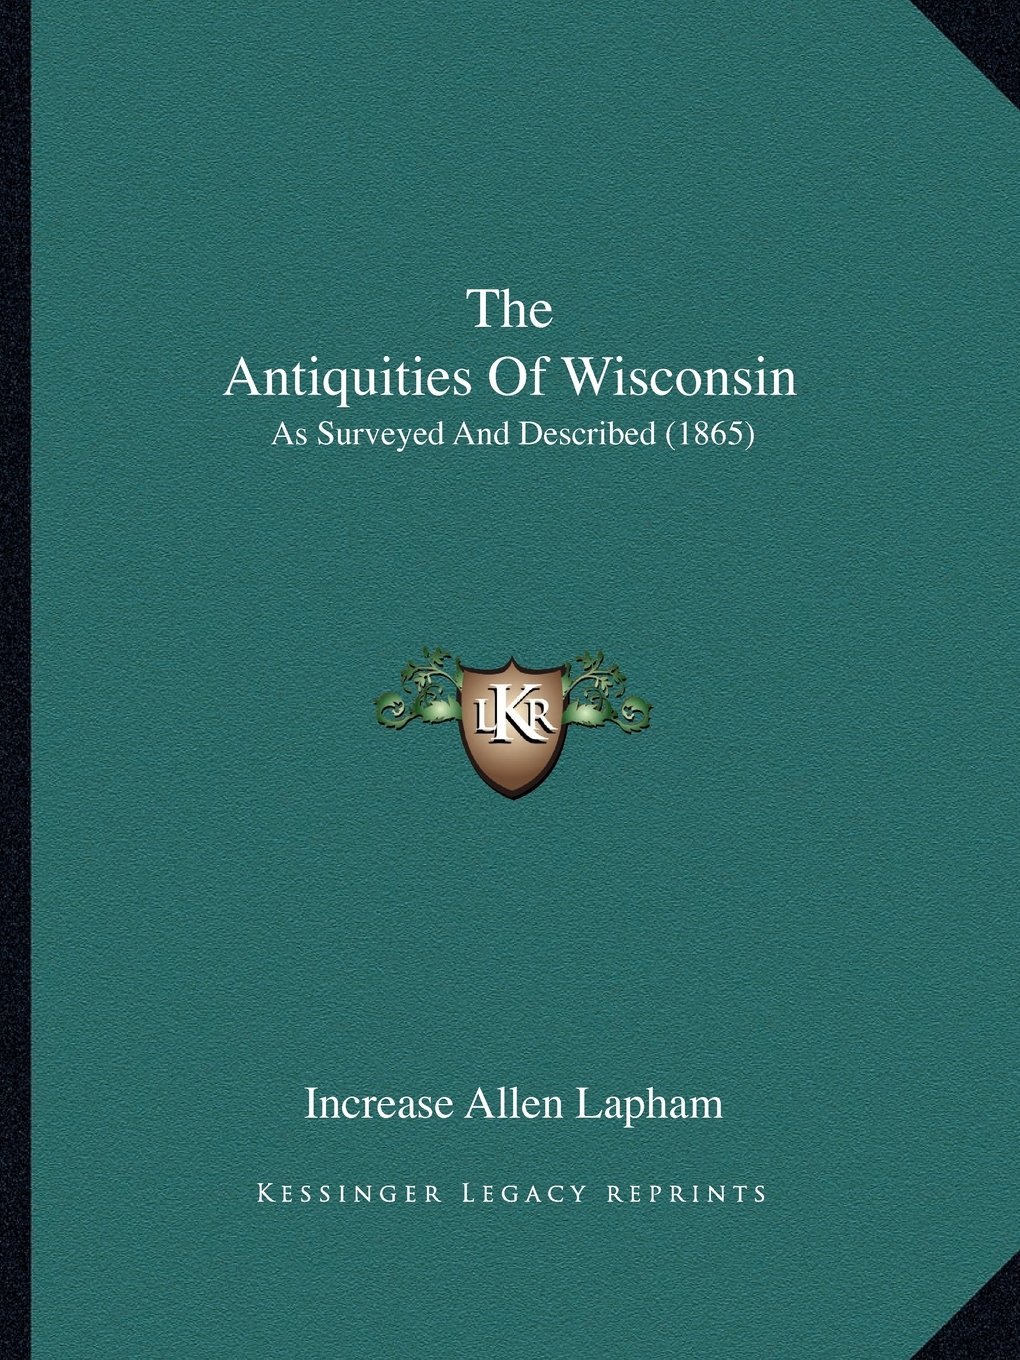 Download The Antiquities Of Wisconsin: As Surveyed And Described (1865) pdf